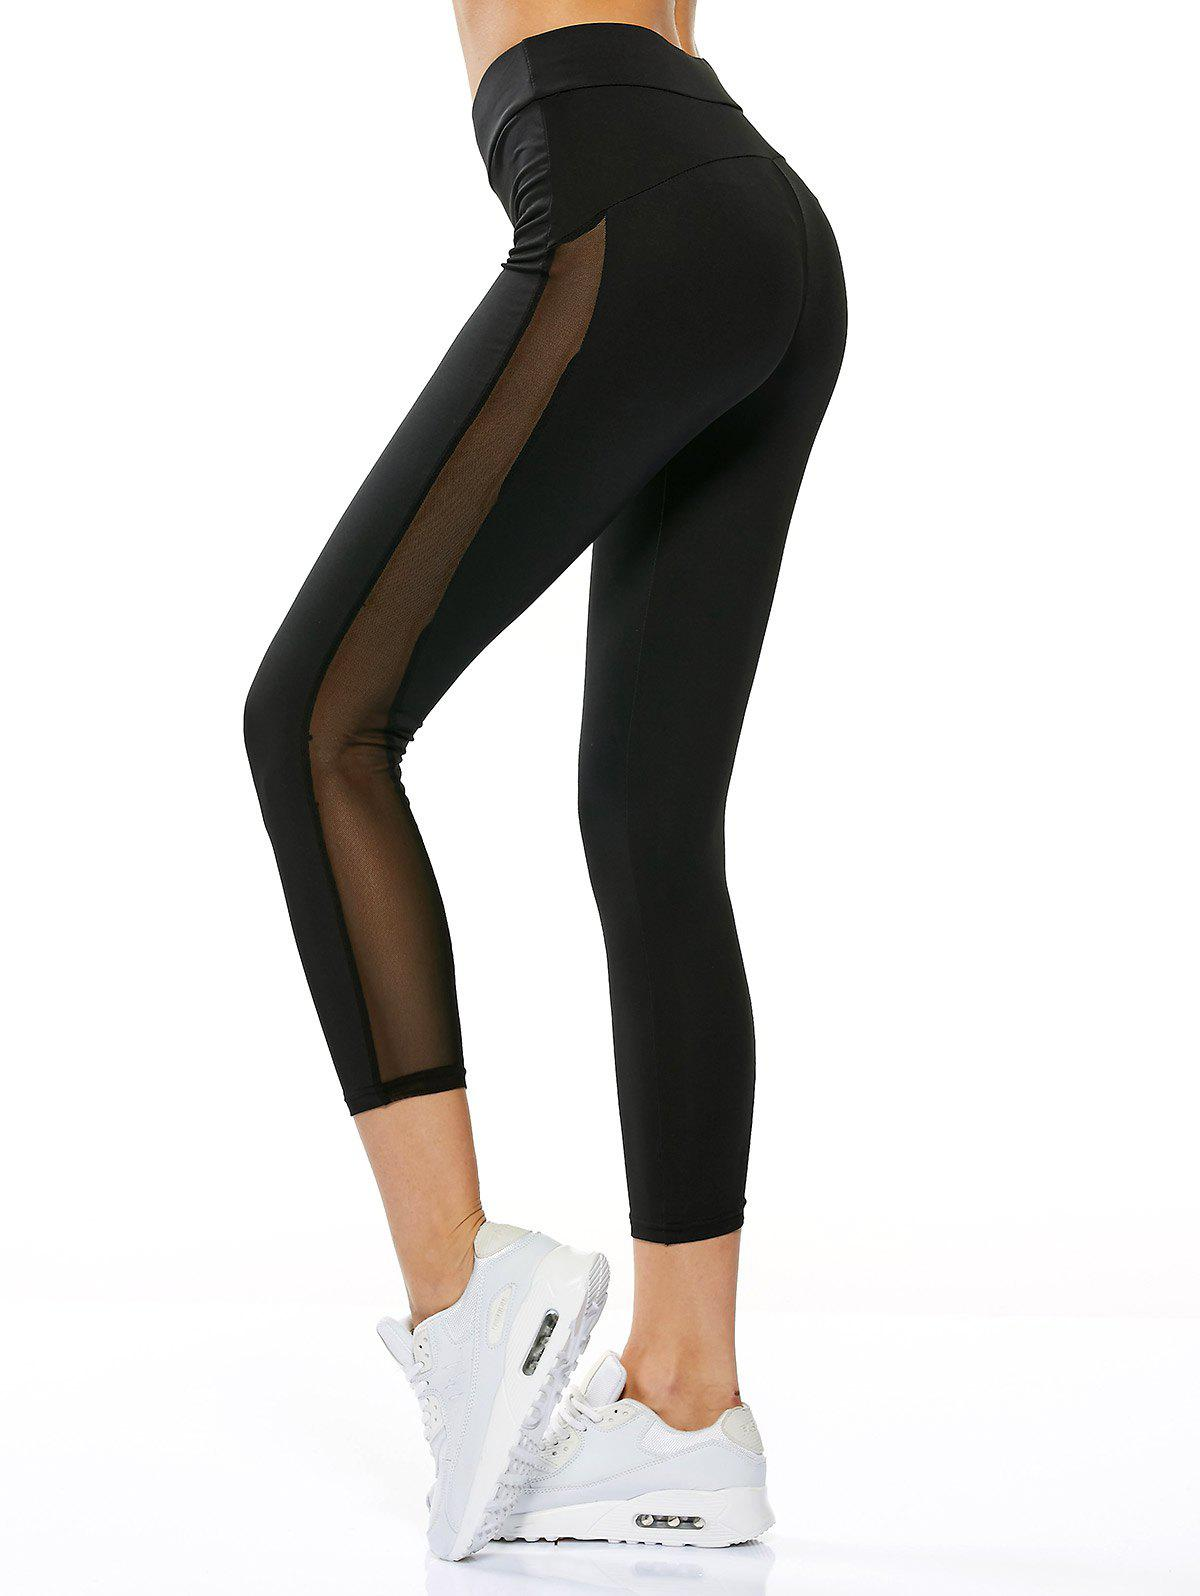 Sheer Mesh Insert Gym Running Capri LeggingsWOMEN<br><br>Size: S; Color: BLACK; Style: Active; Length: Capri; Material: Polyester,Spandex; Fit Type: Skinny; Waist Type: High; Closure Type: Elastic Waist; Front Style: Flat; Pattern Type: Solid; Pant Style: Pencil Pants; Elasticity: Elastic; Weight: 0.2700kg; Package Contents: 1 x Leggings;